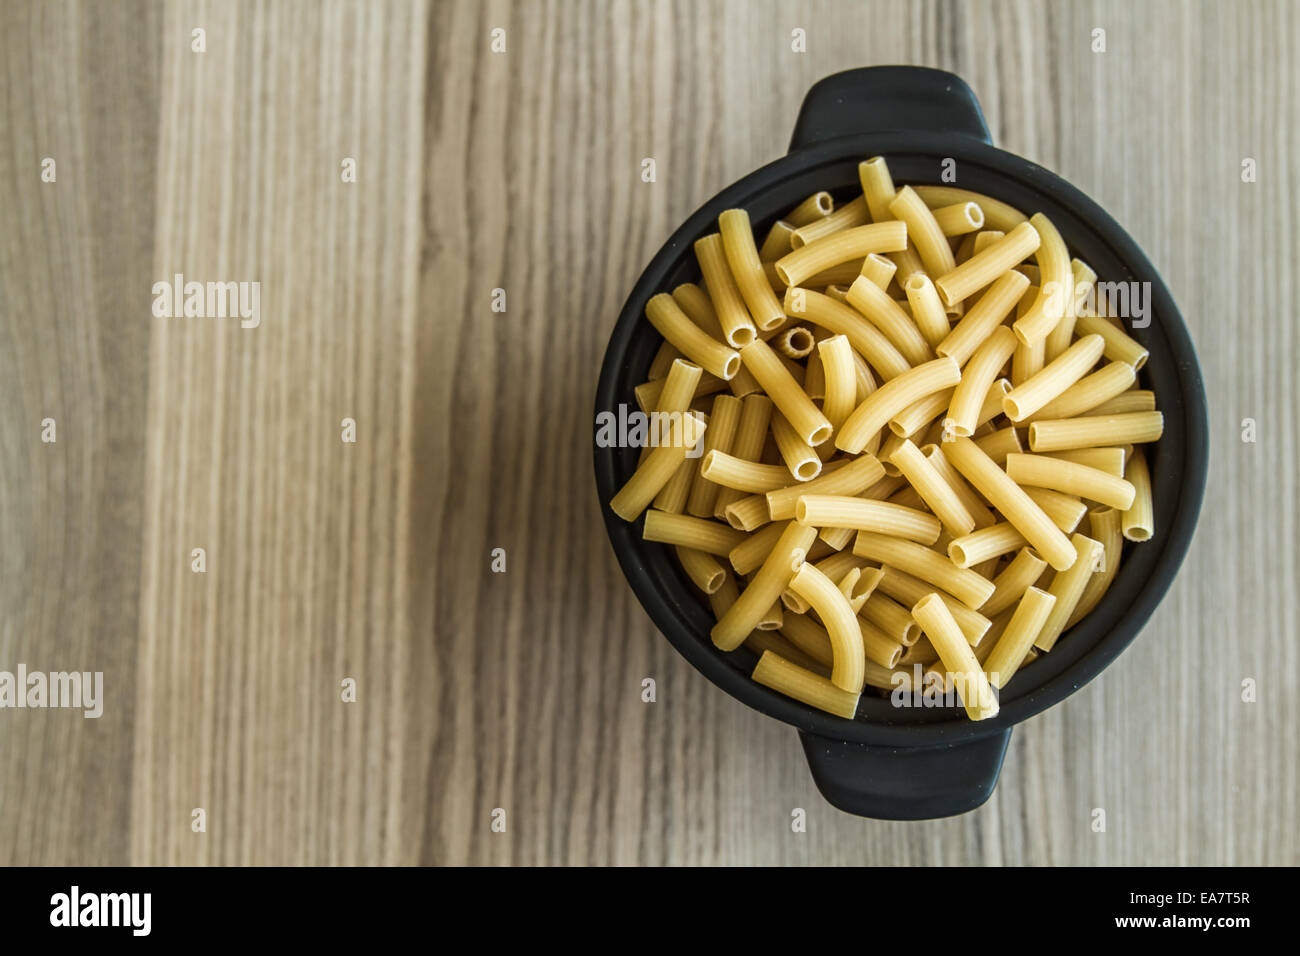 Italian dry pasta in a black Bow on a wooden table Stock Photo